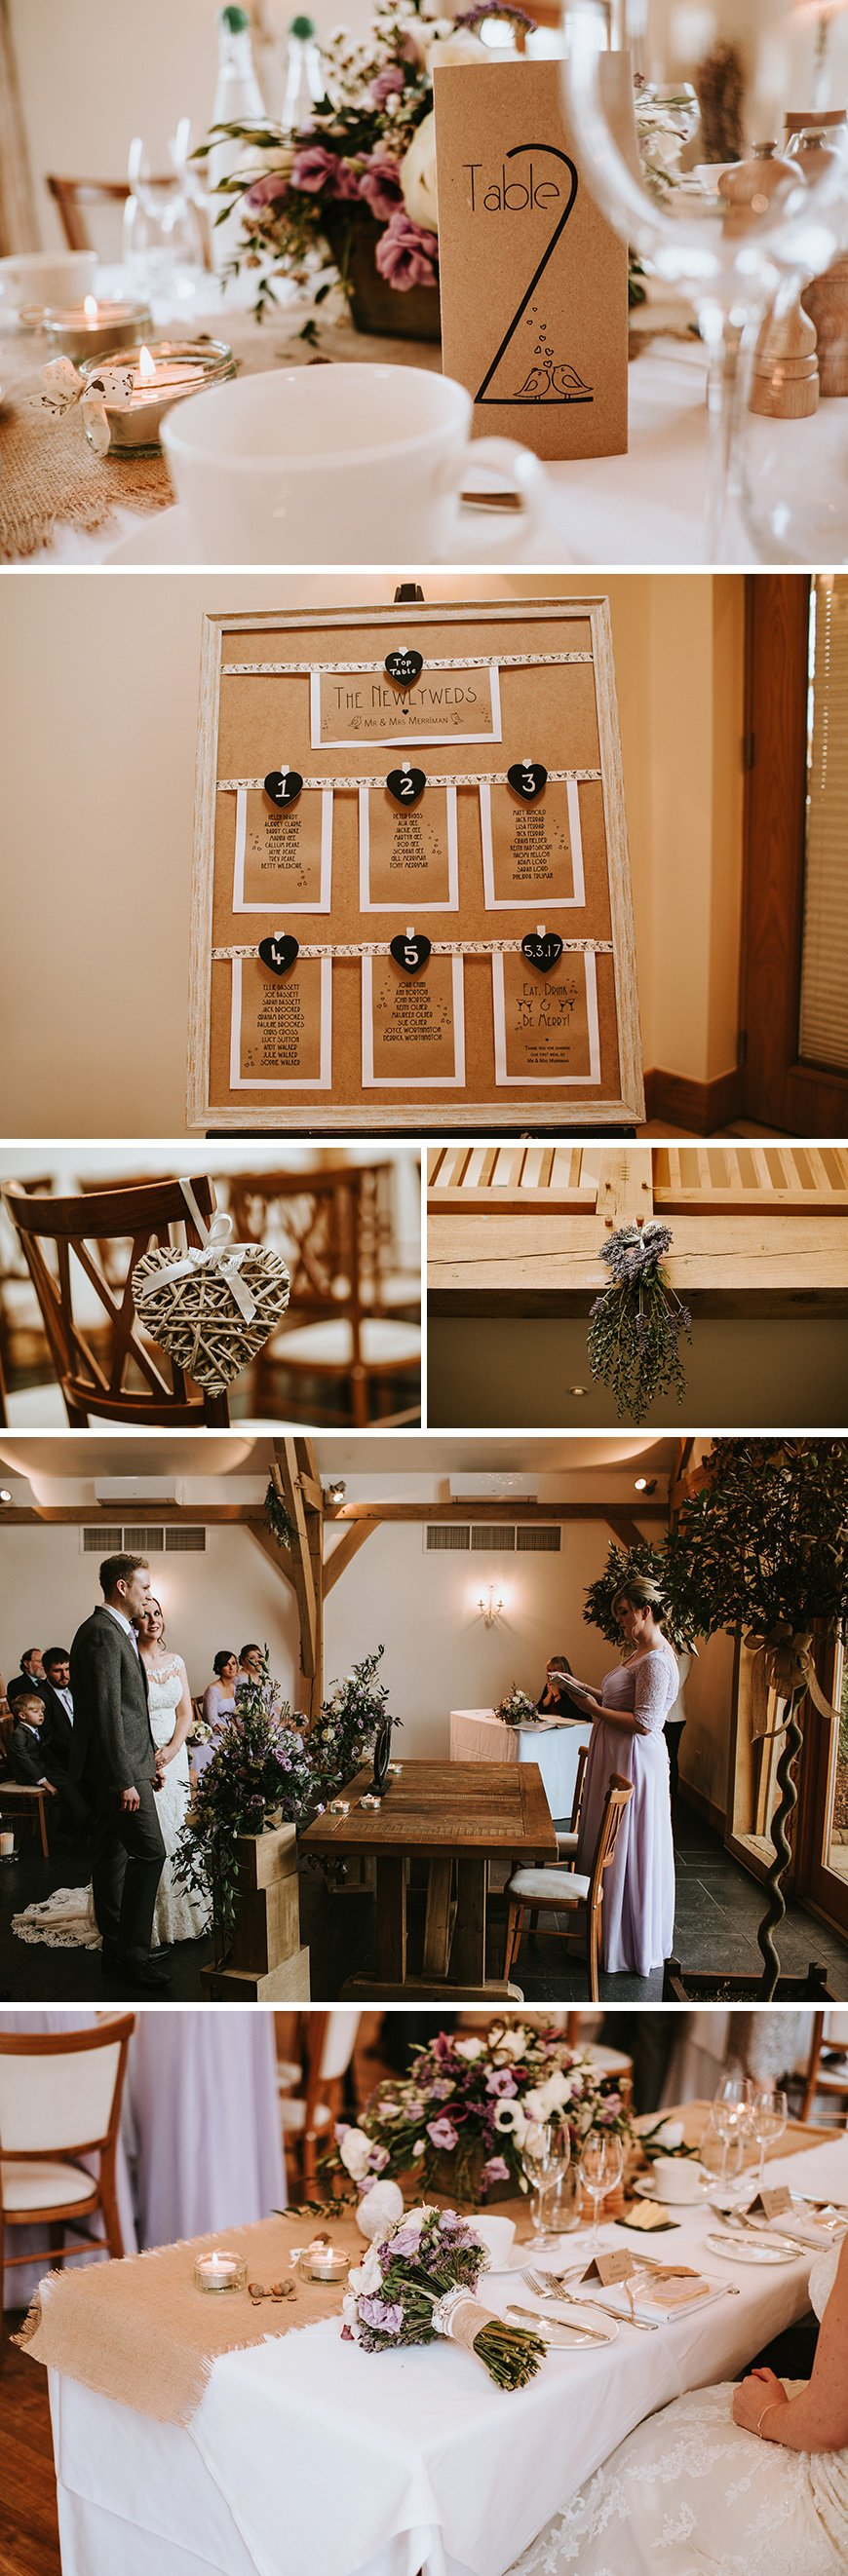 Real Wedding - Laura and Matthew's Rustic Country Wedding at Mythe Barn | CHWV